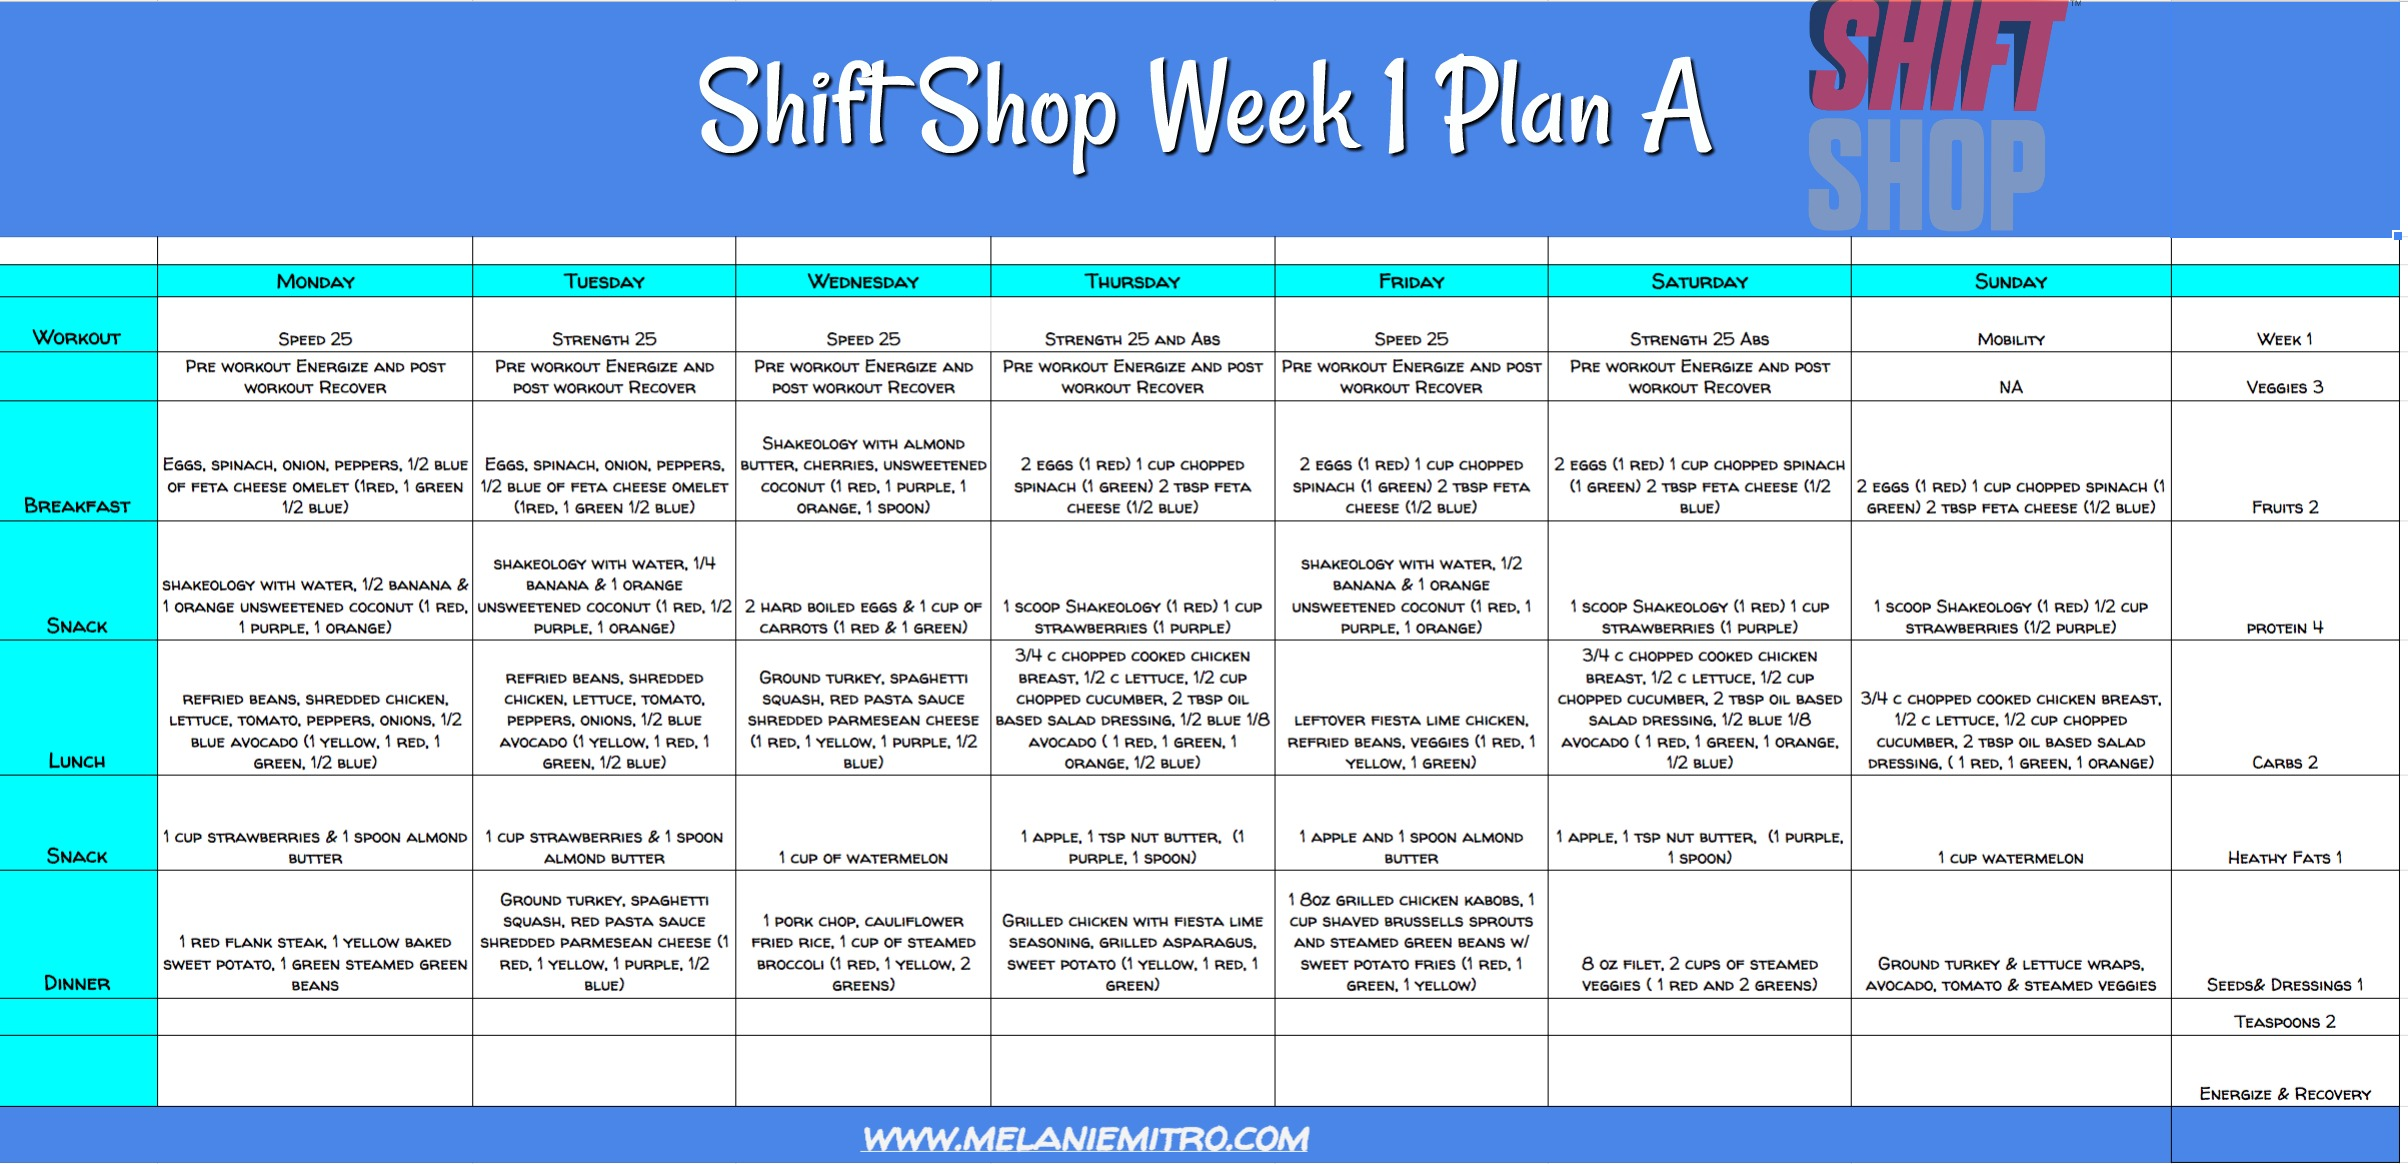 Shift Shop Meal Plan, Meal Plan A, Melanie Mitro, Clean Eating, Committed To Getting Fit